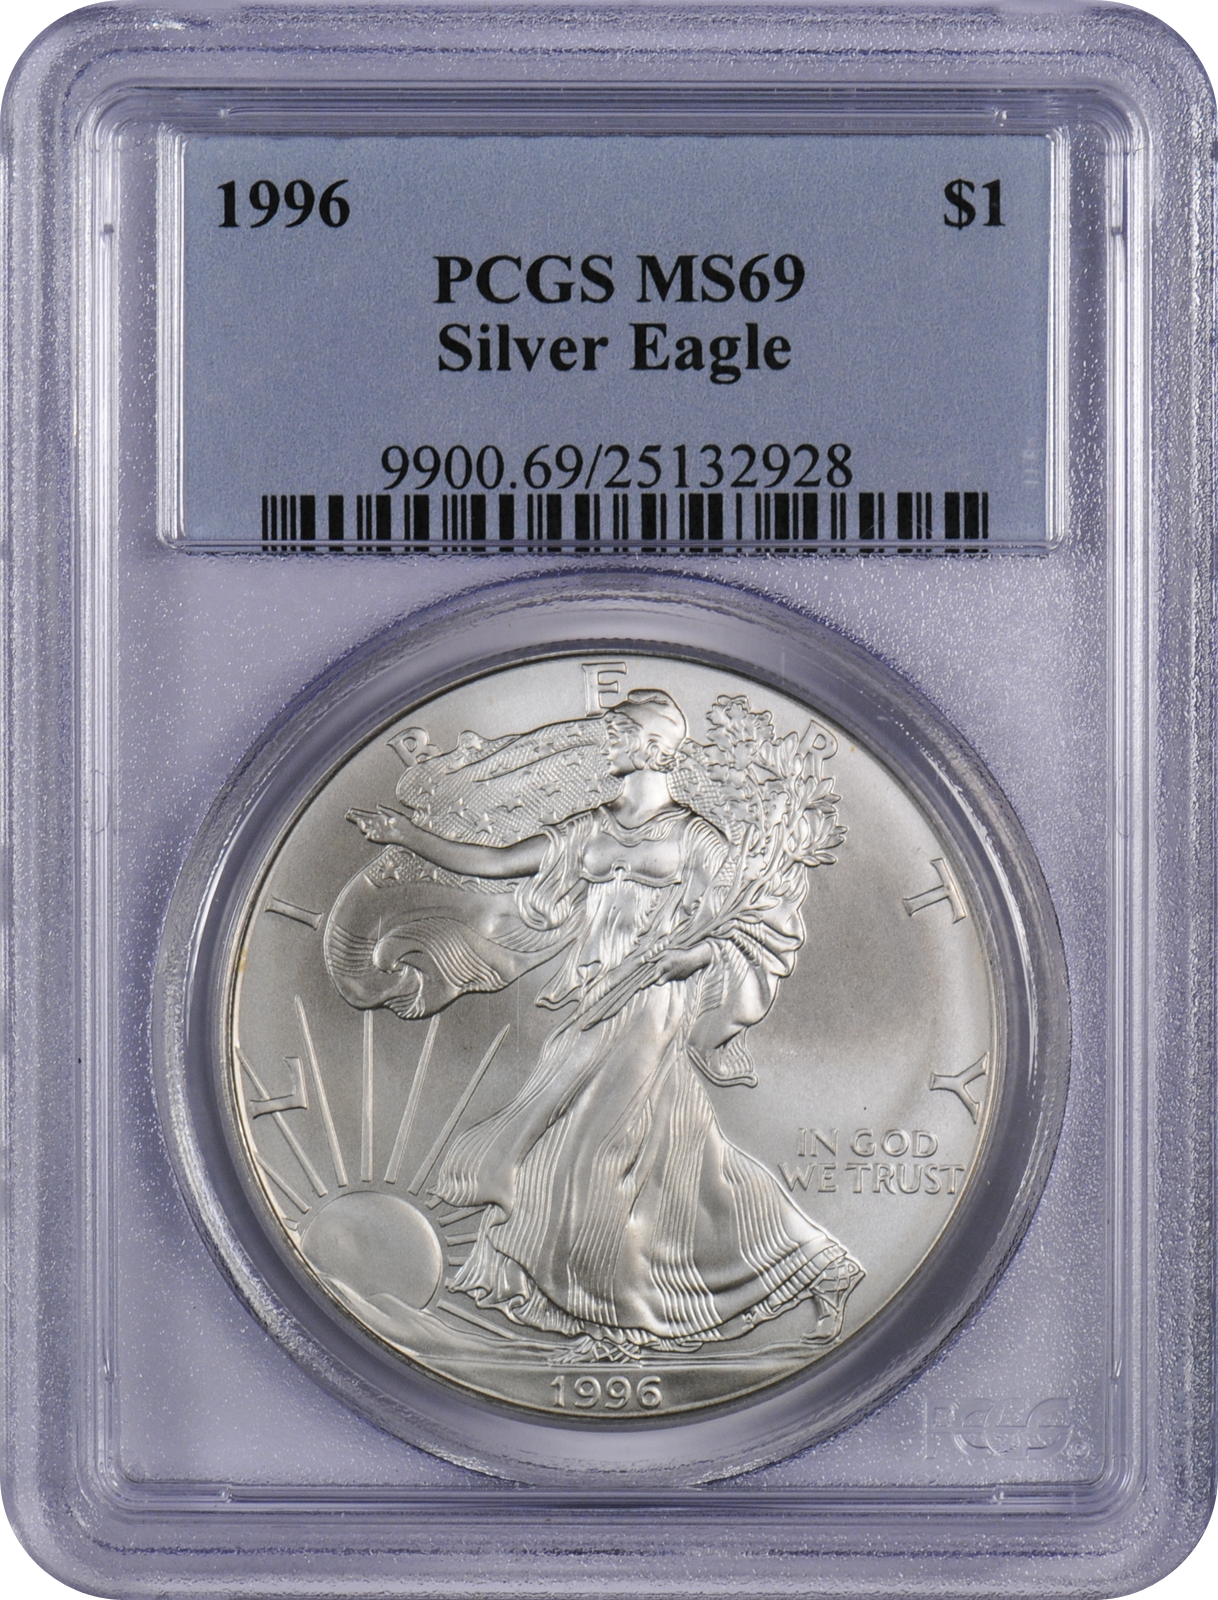 This 1996 Pcgs Ms69 Silver Eagle Is A Popular Coin For Investors And Collectors Alike This Coin Has A Face Value Of O Silver Eagles Pcgs Silver Bullion Coins